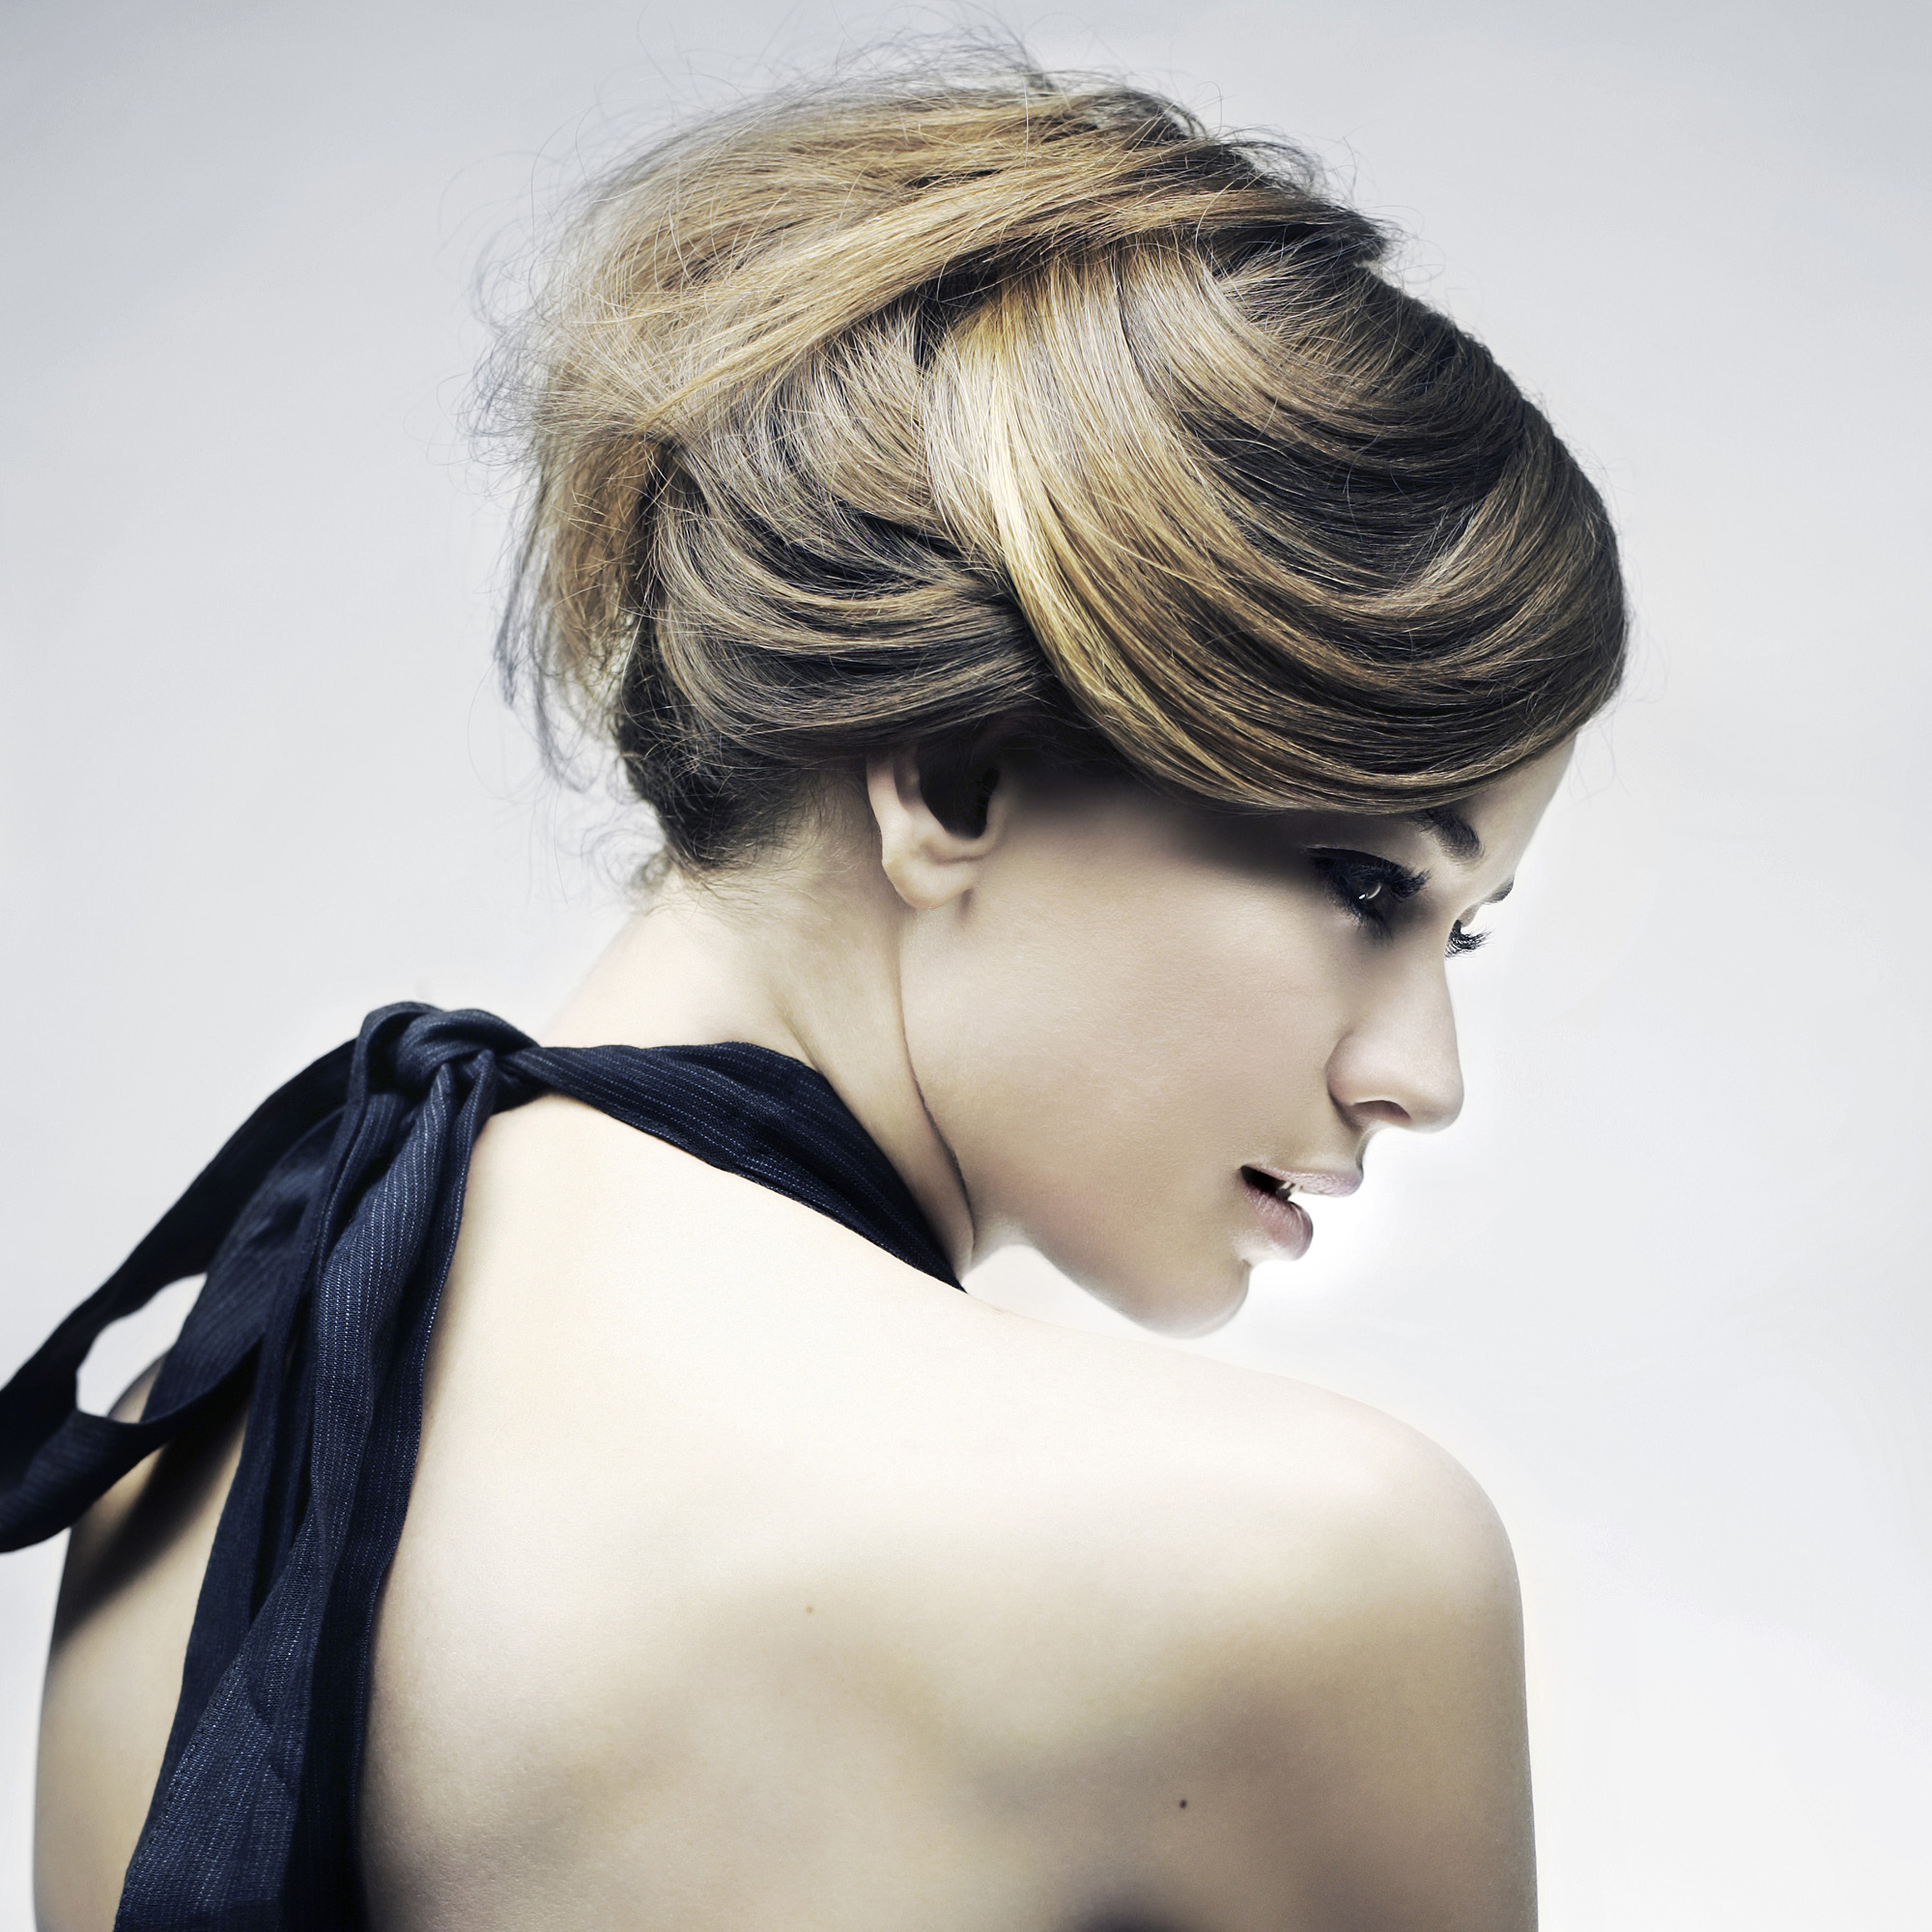 The best hairstyles for women over 40 - tips for the perfect cut and ...